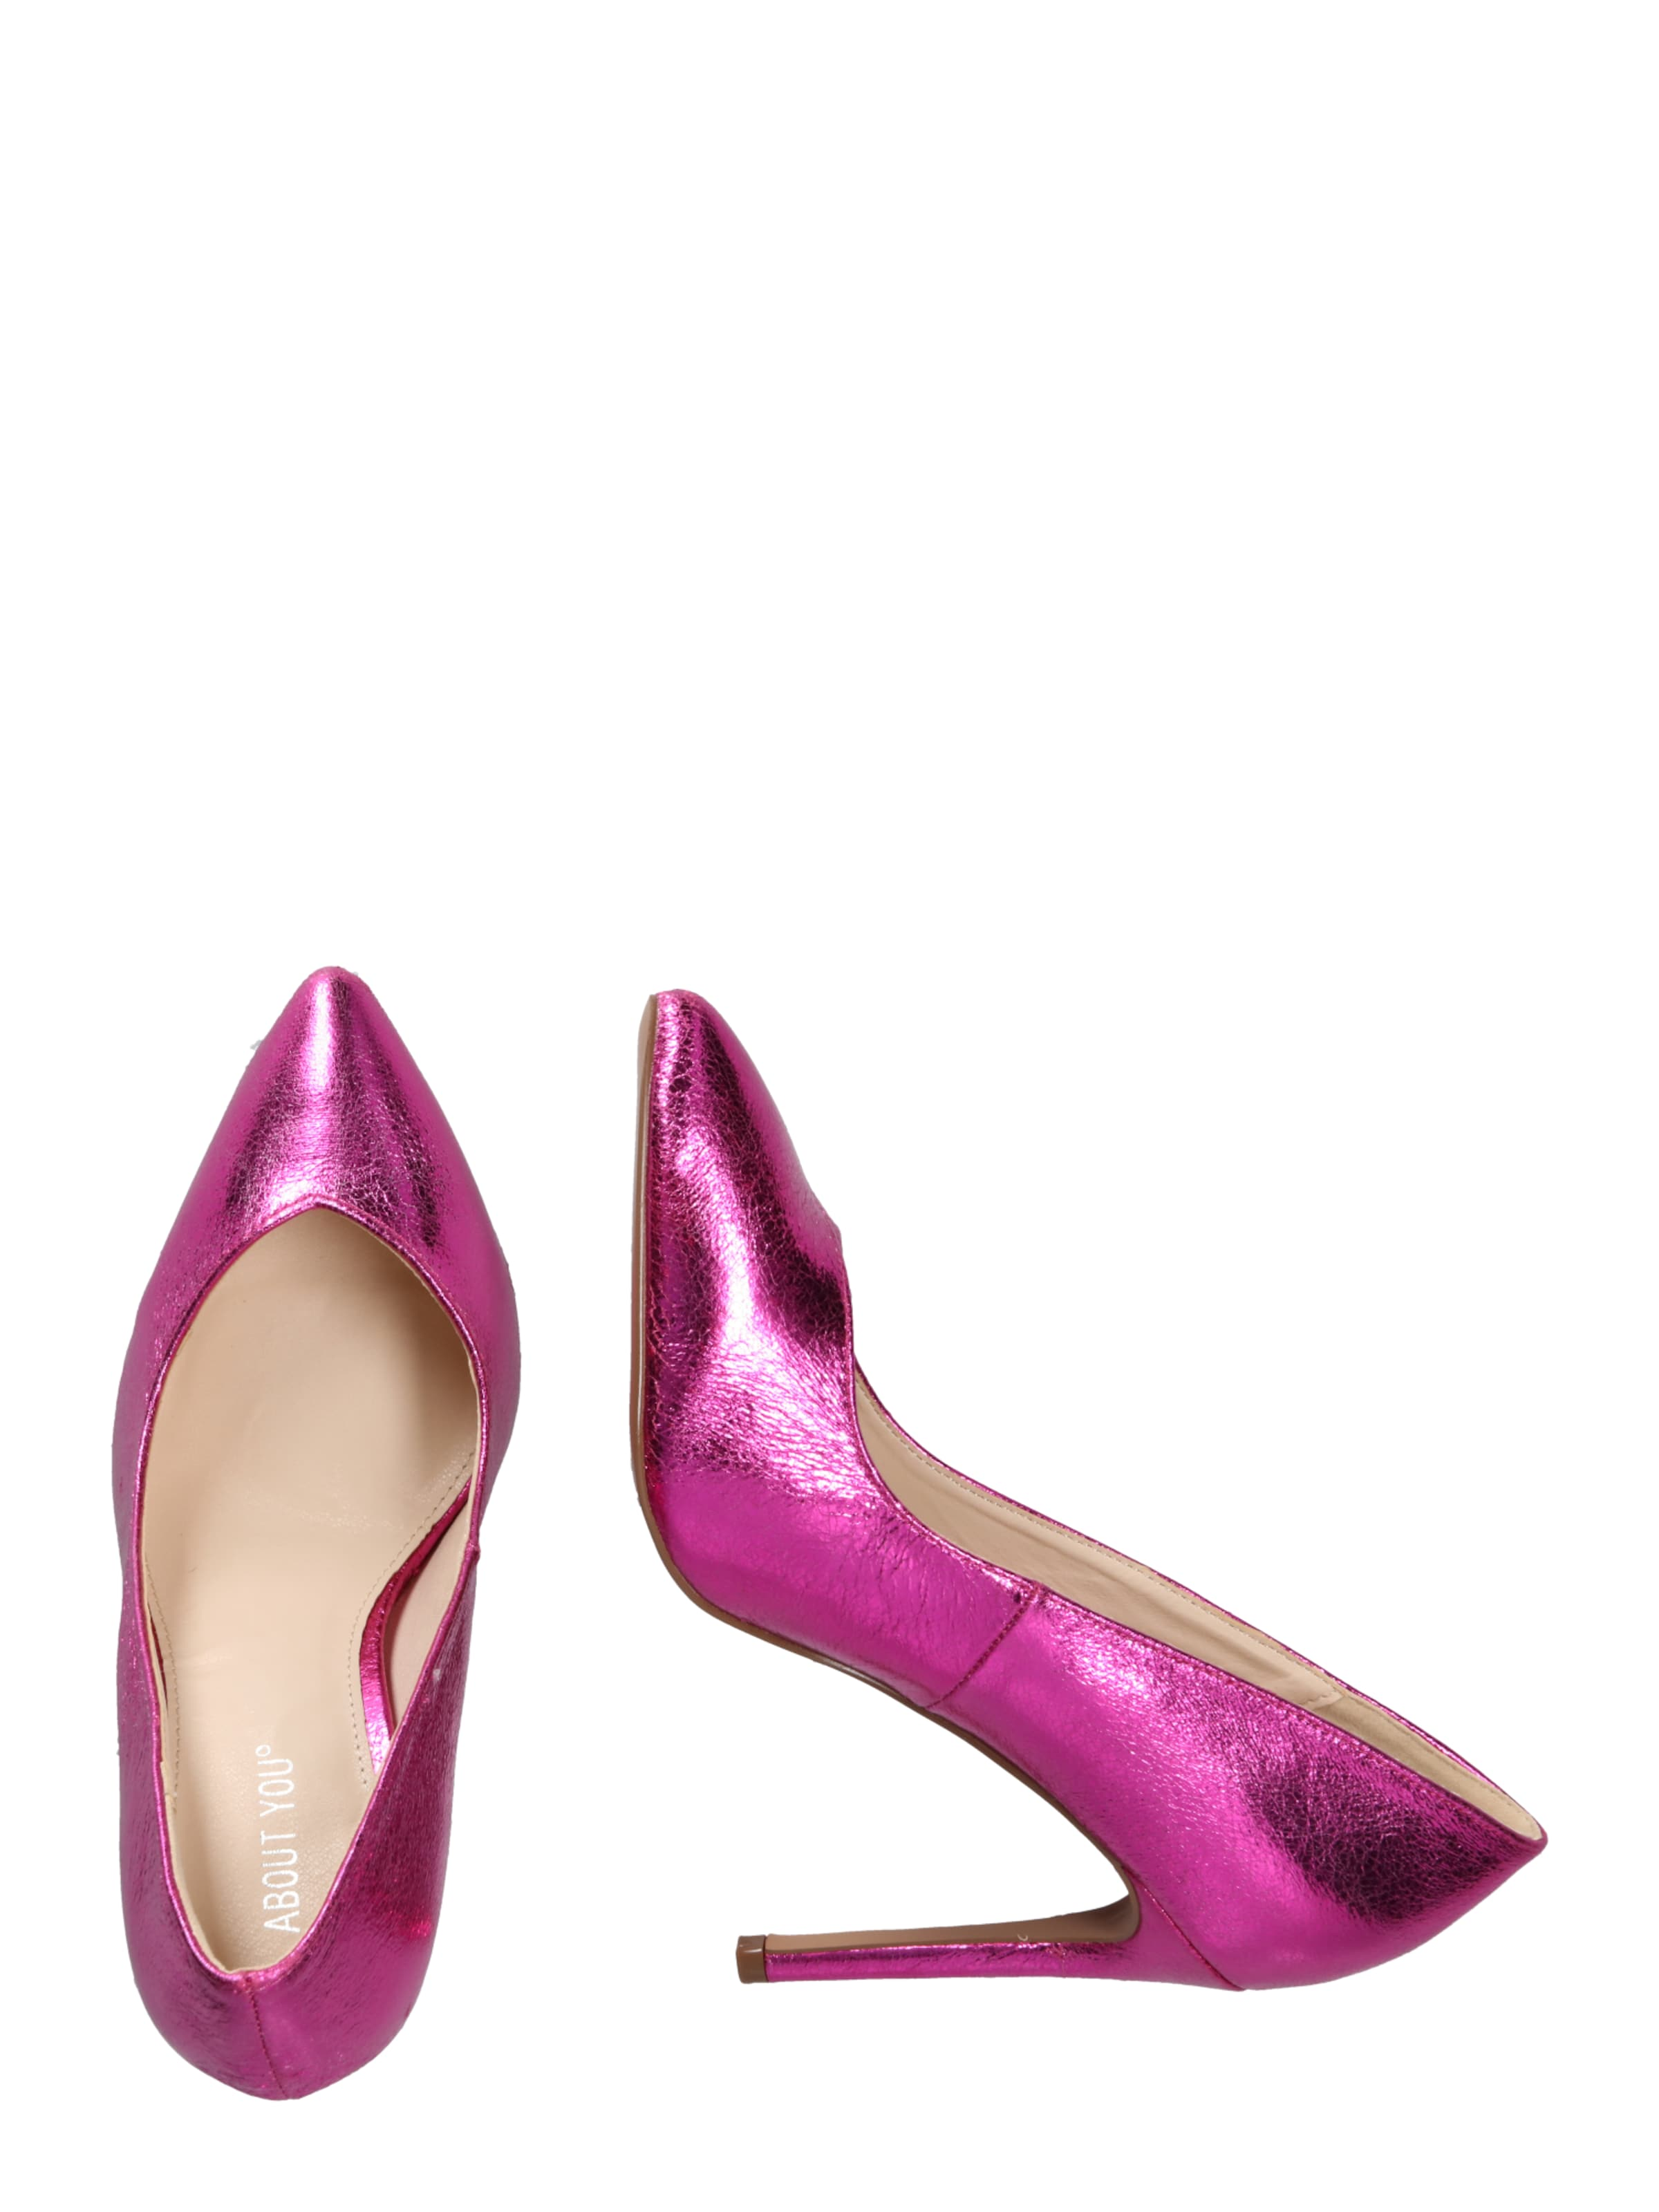 Heels High In 'janne' About You Fuchsia Yyf7b6gv